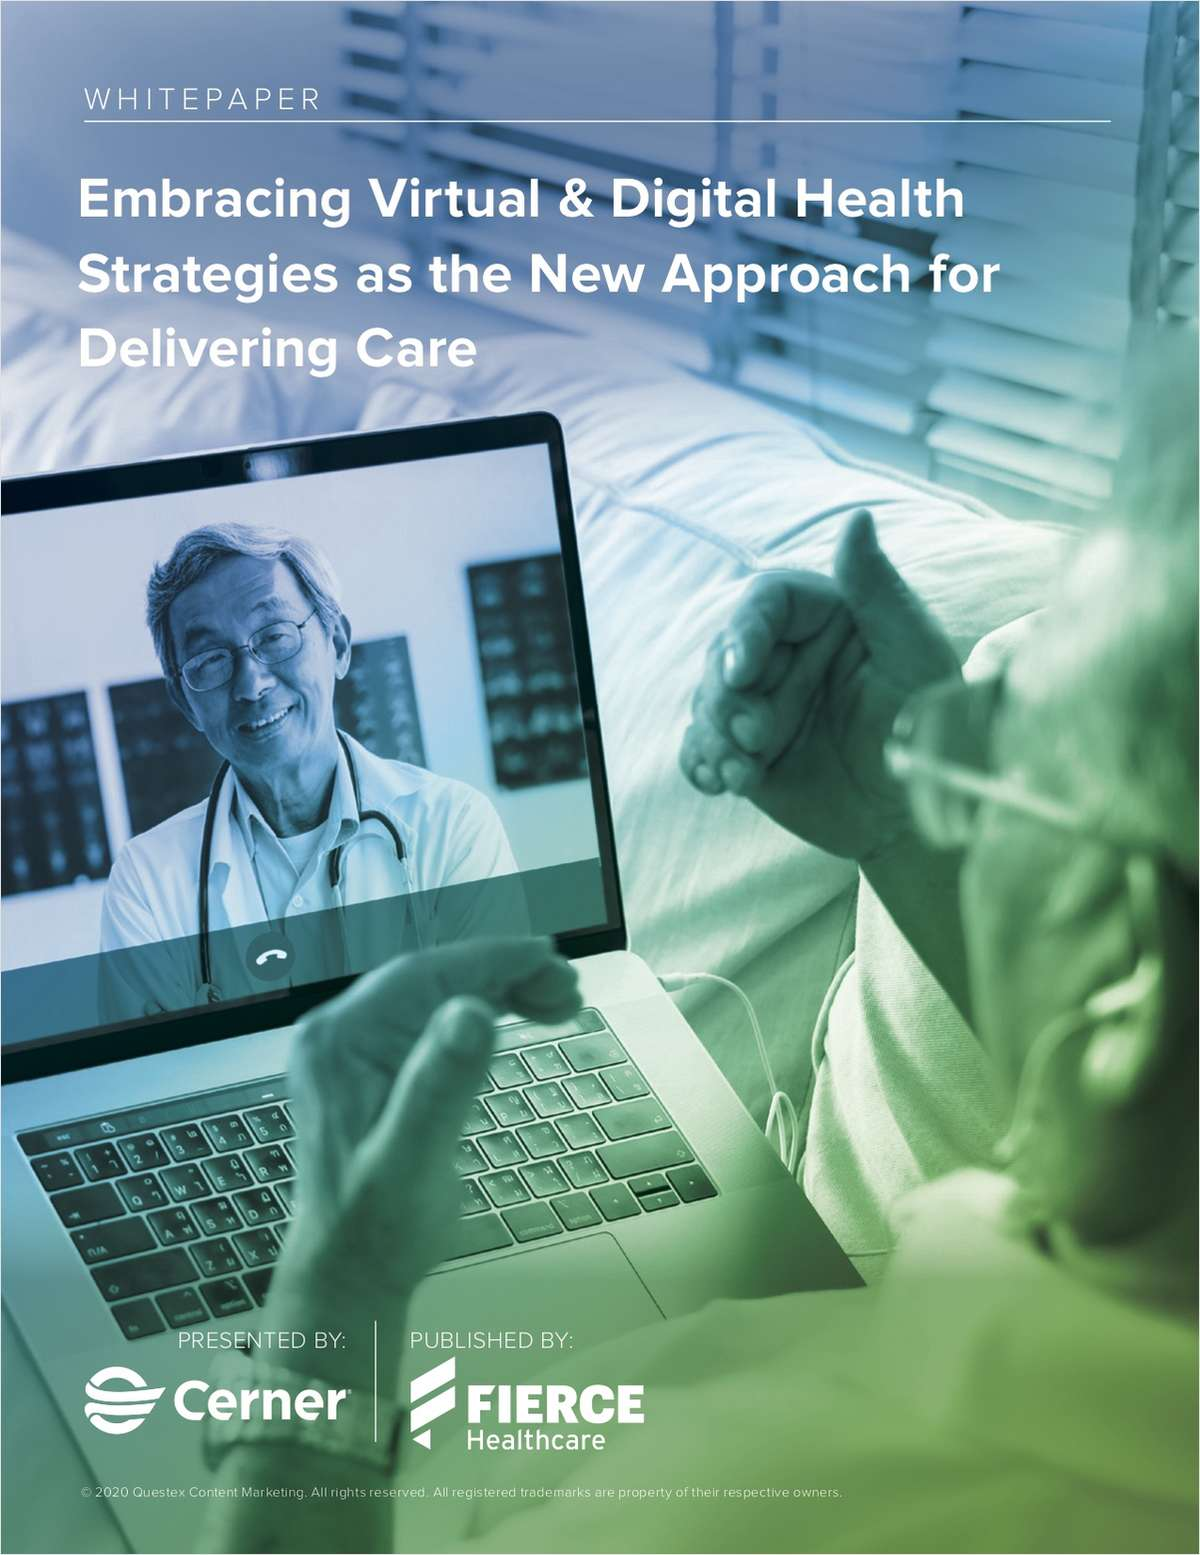 Embracing Virtual & Digital Health Strategies as the New Approach for Delivering Care